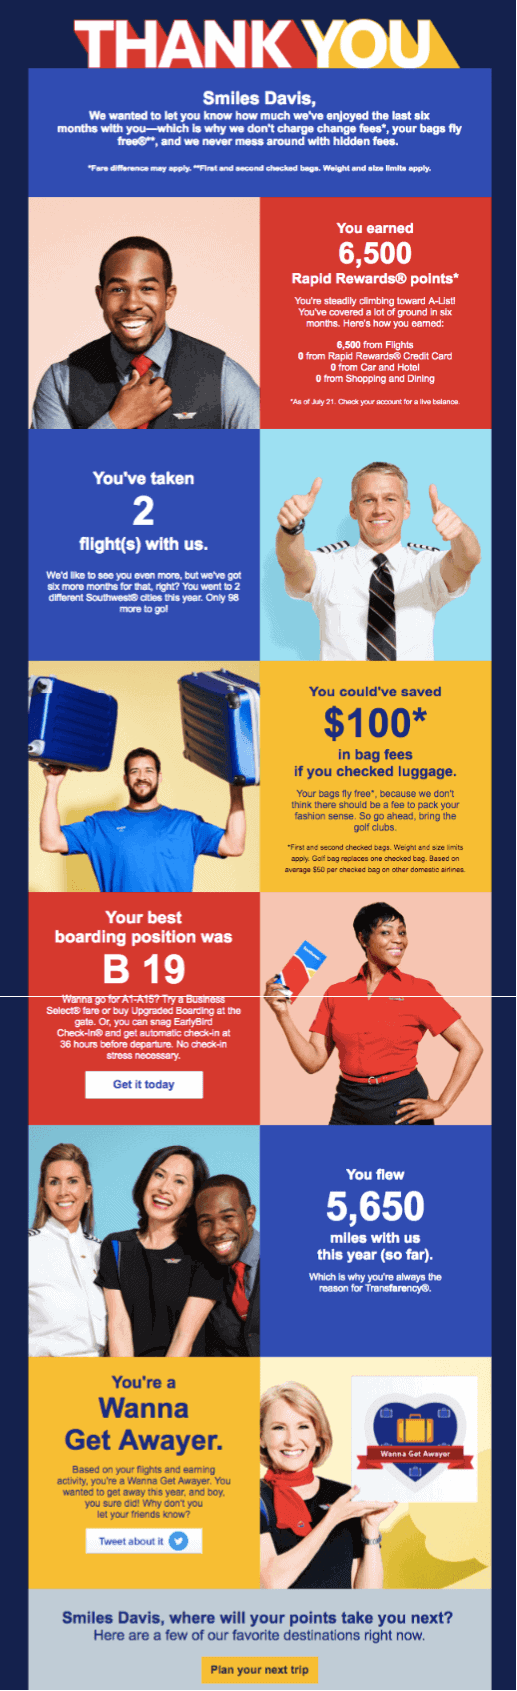 Southwest Airlines thank you message example from Really Good Emails.